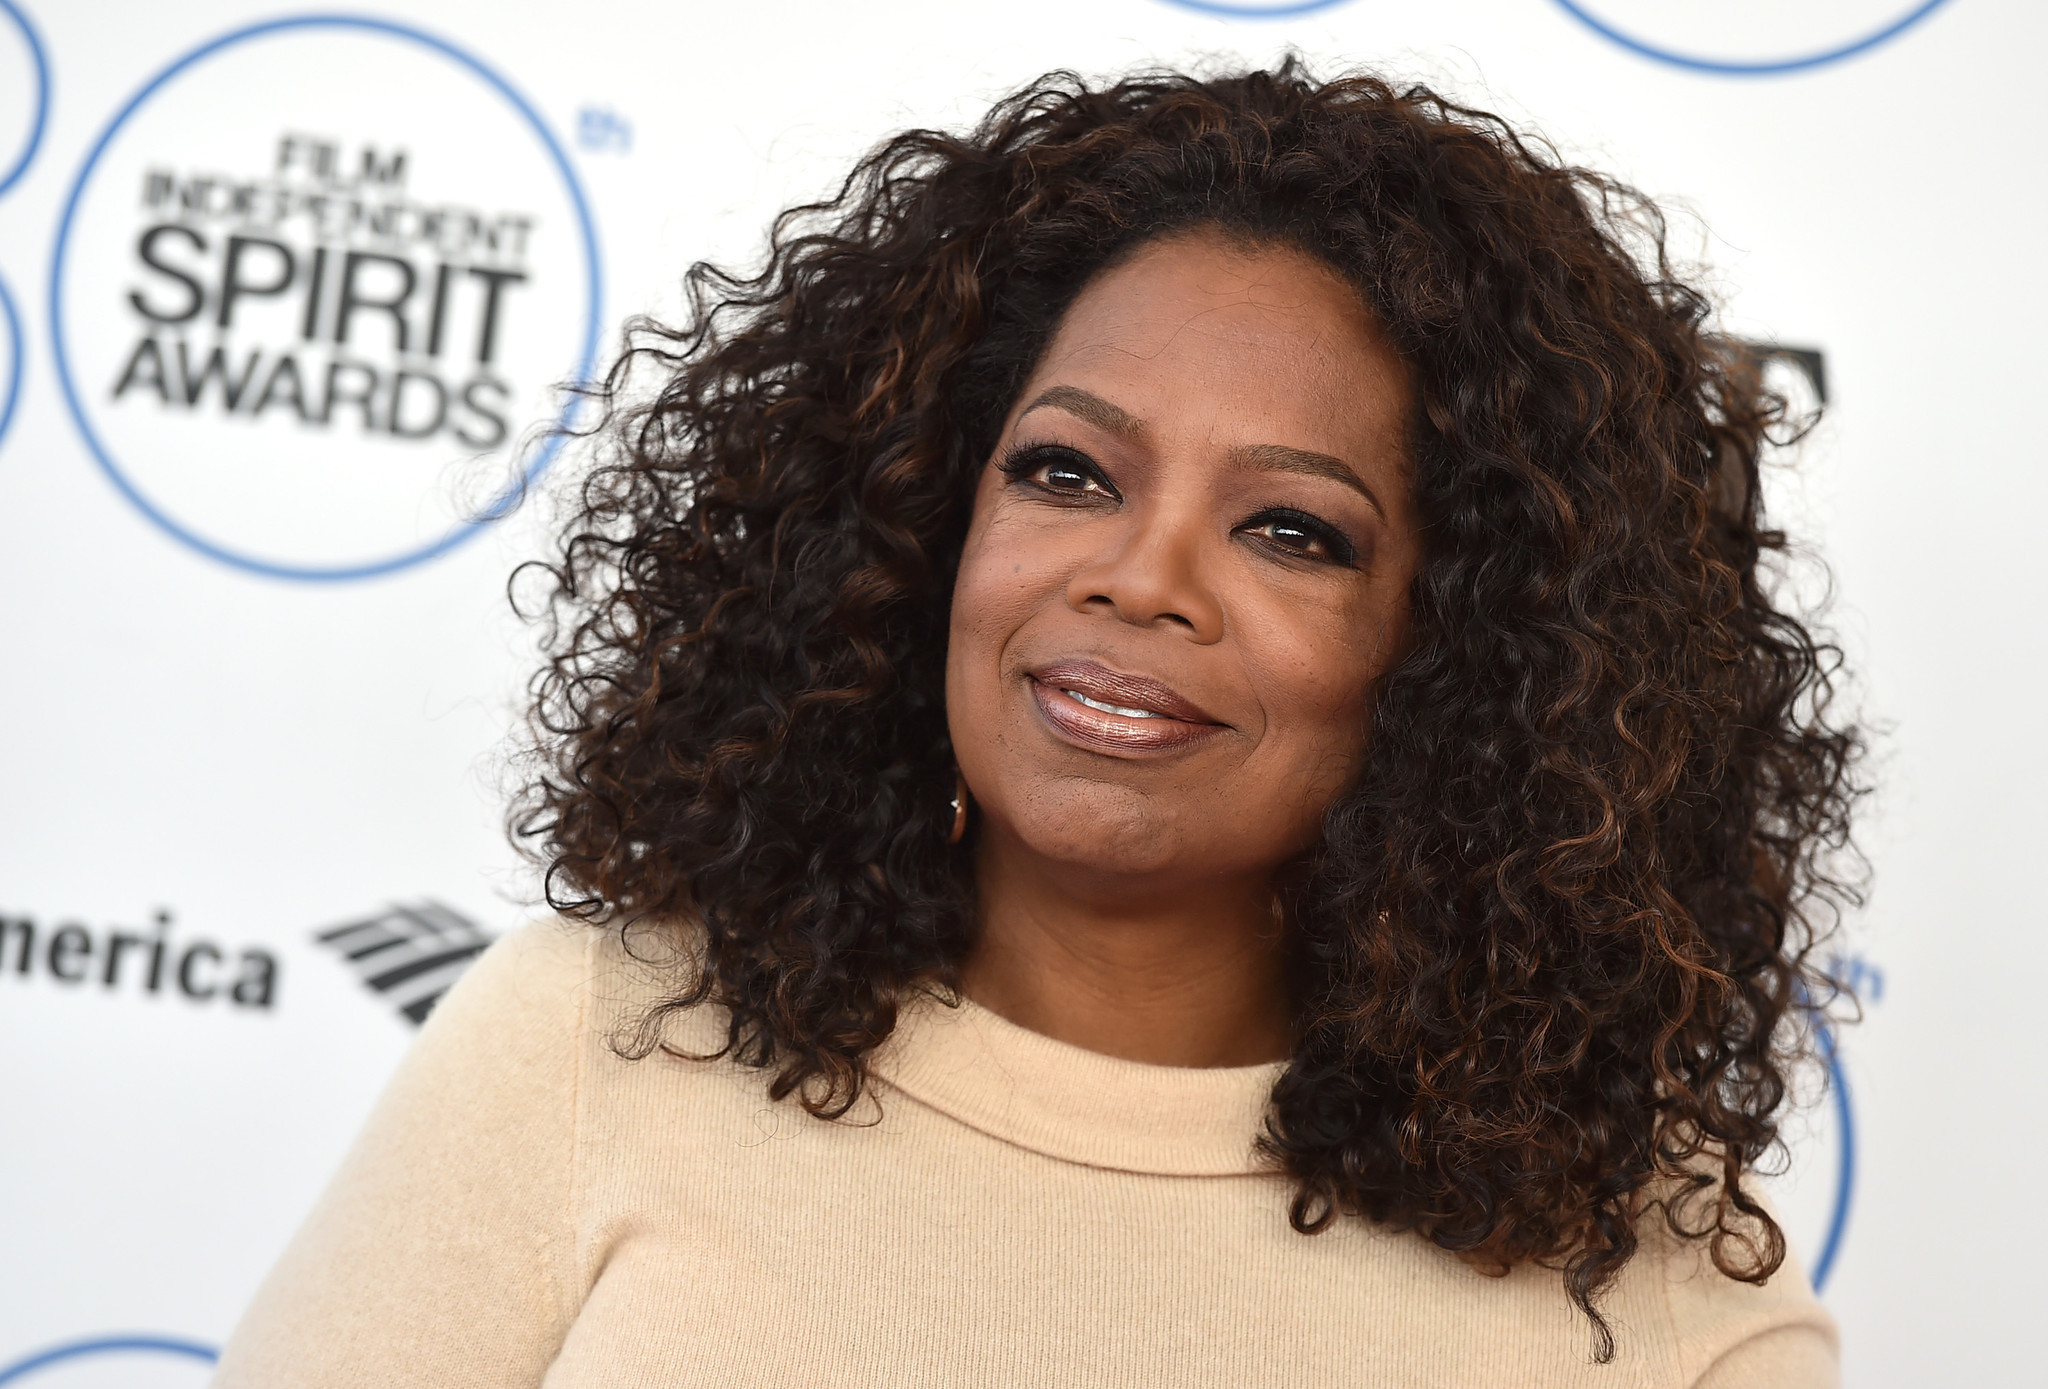 Oprah Winfrey Finds Real Freedom Since The End Of Her Talk Show